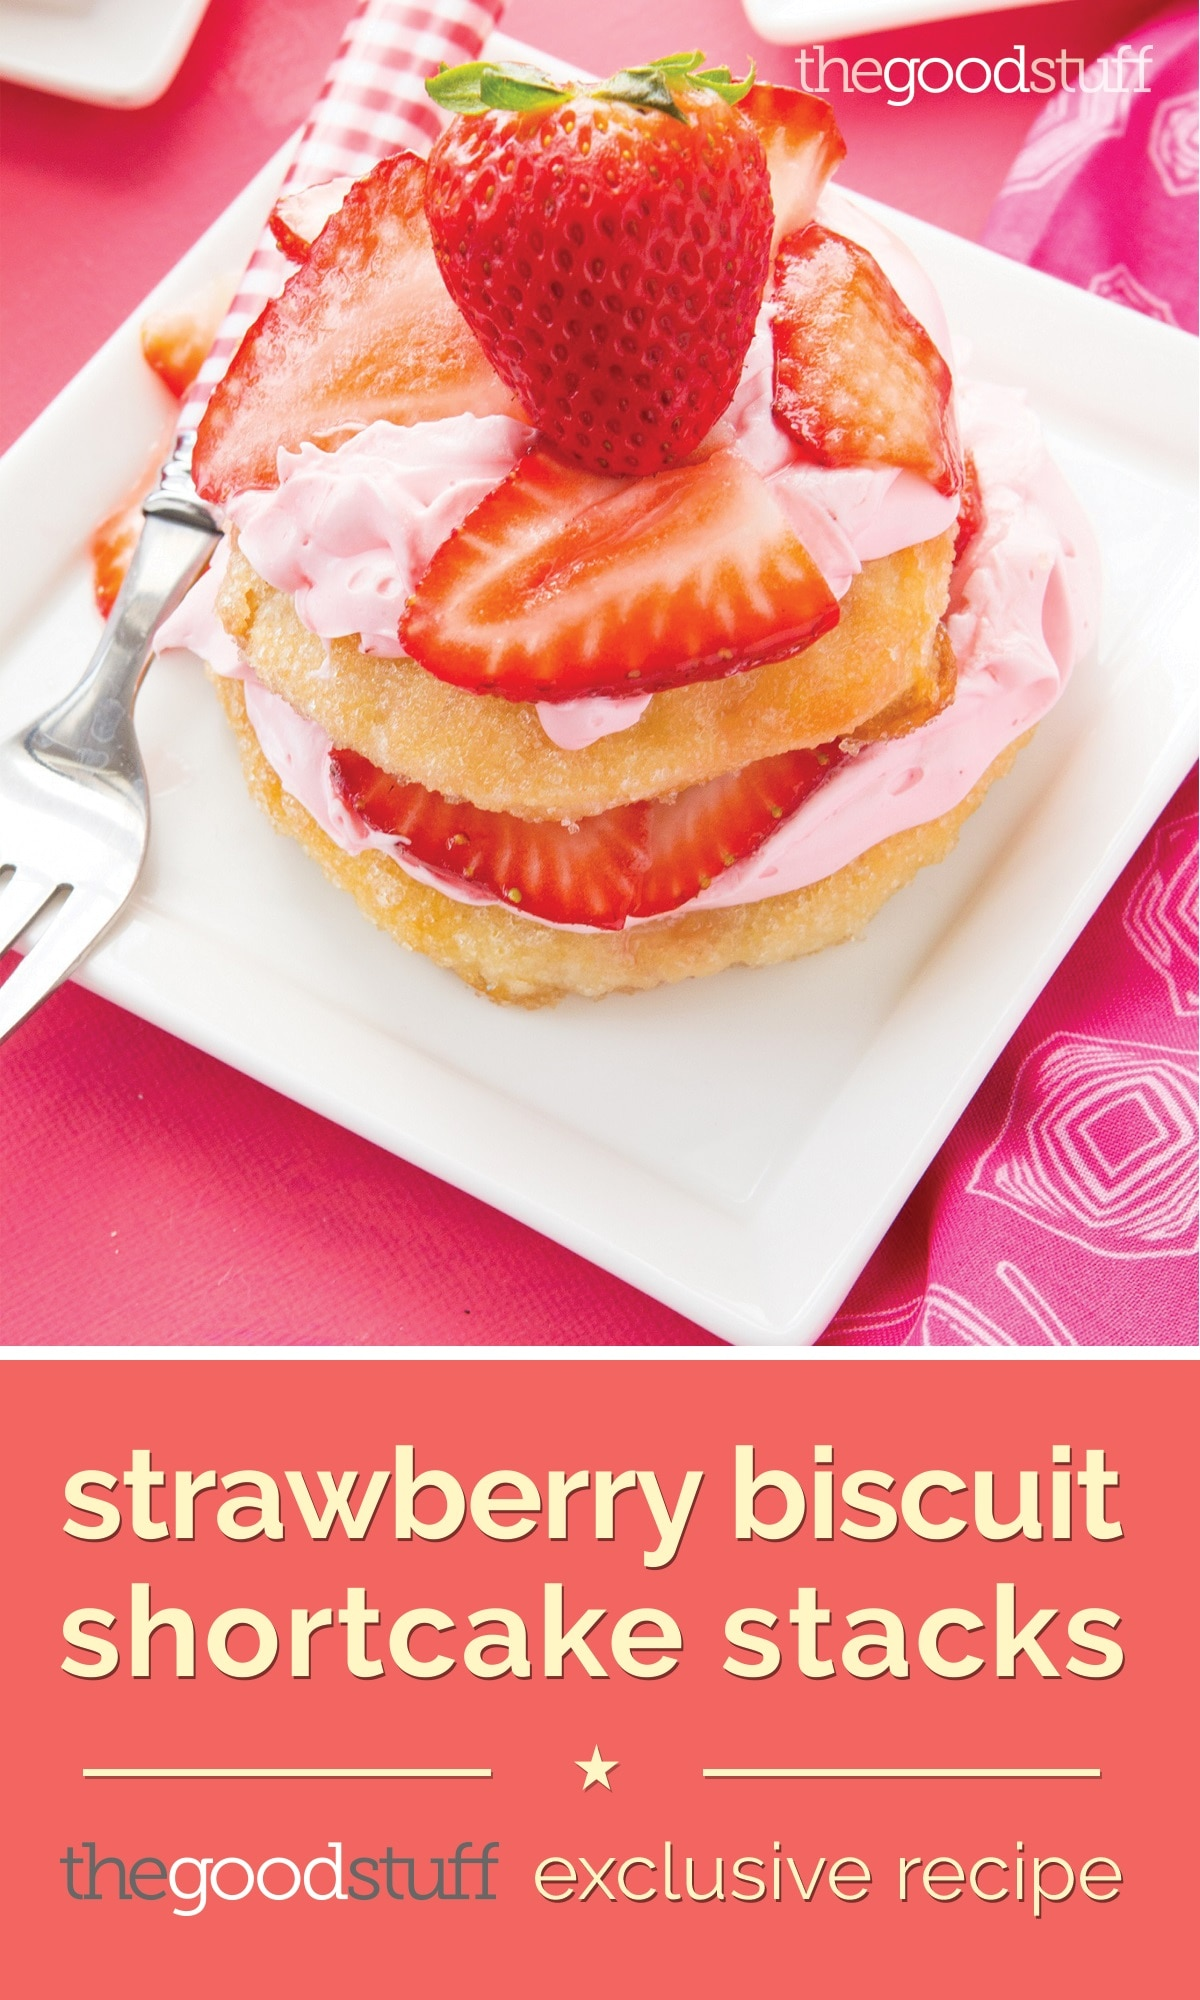 food-strawberry-biscuit-shortcake-stacks